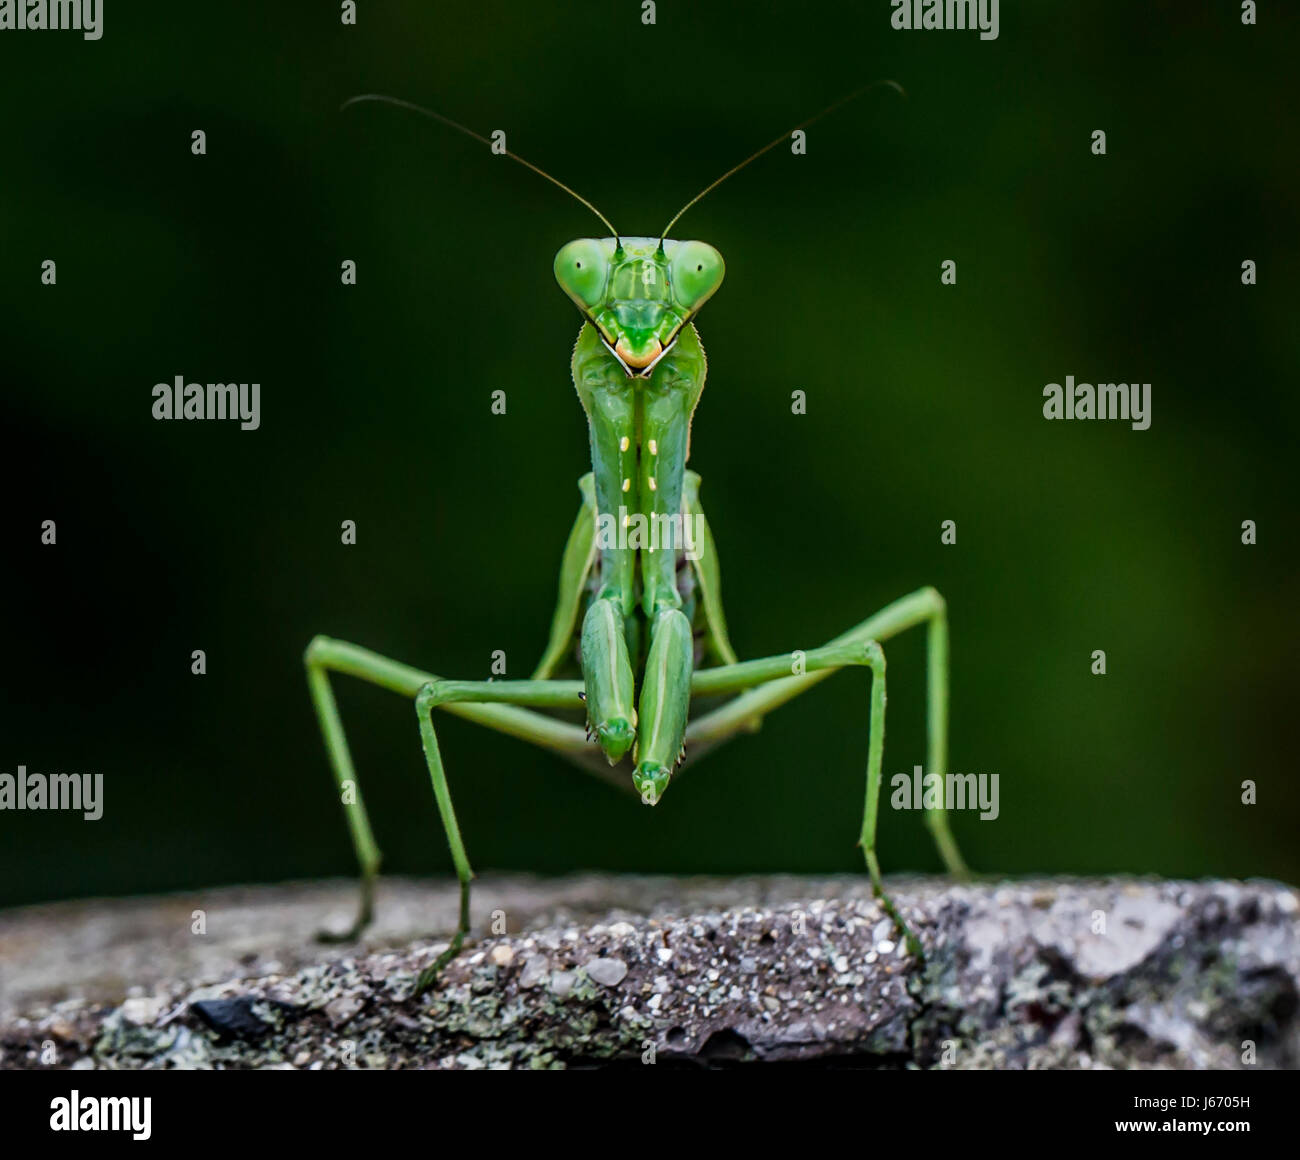 Praying Mantis Stockbild